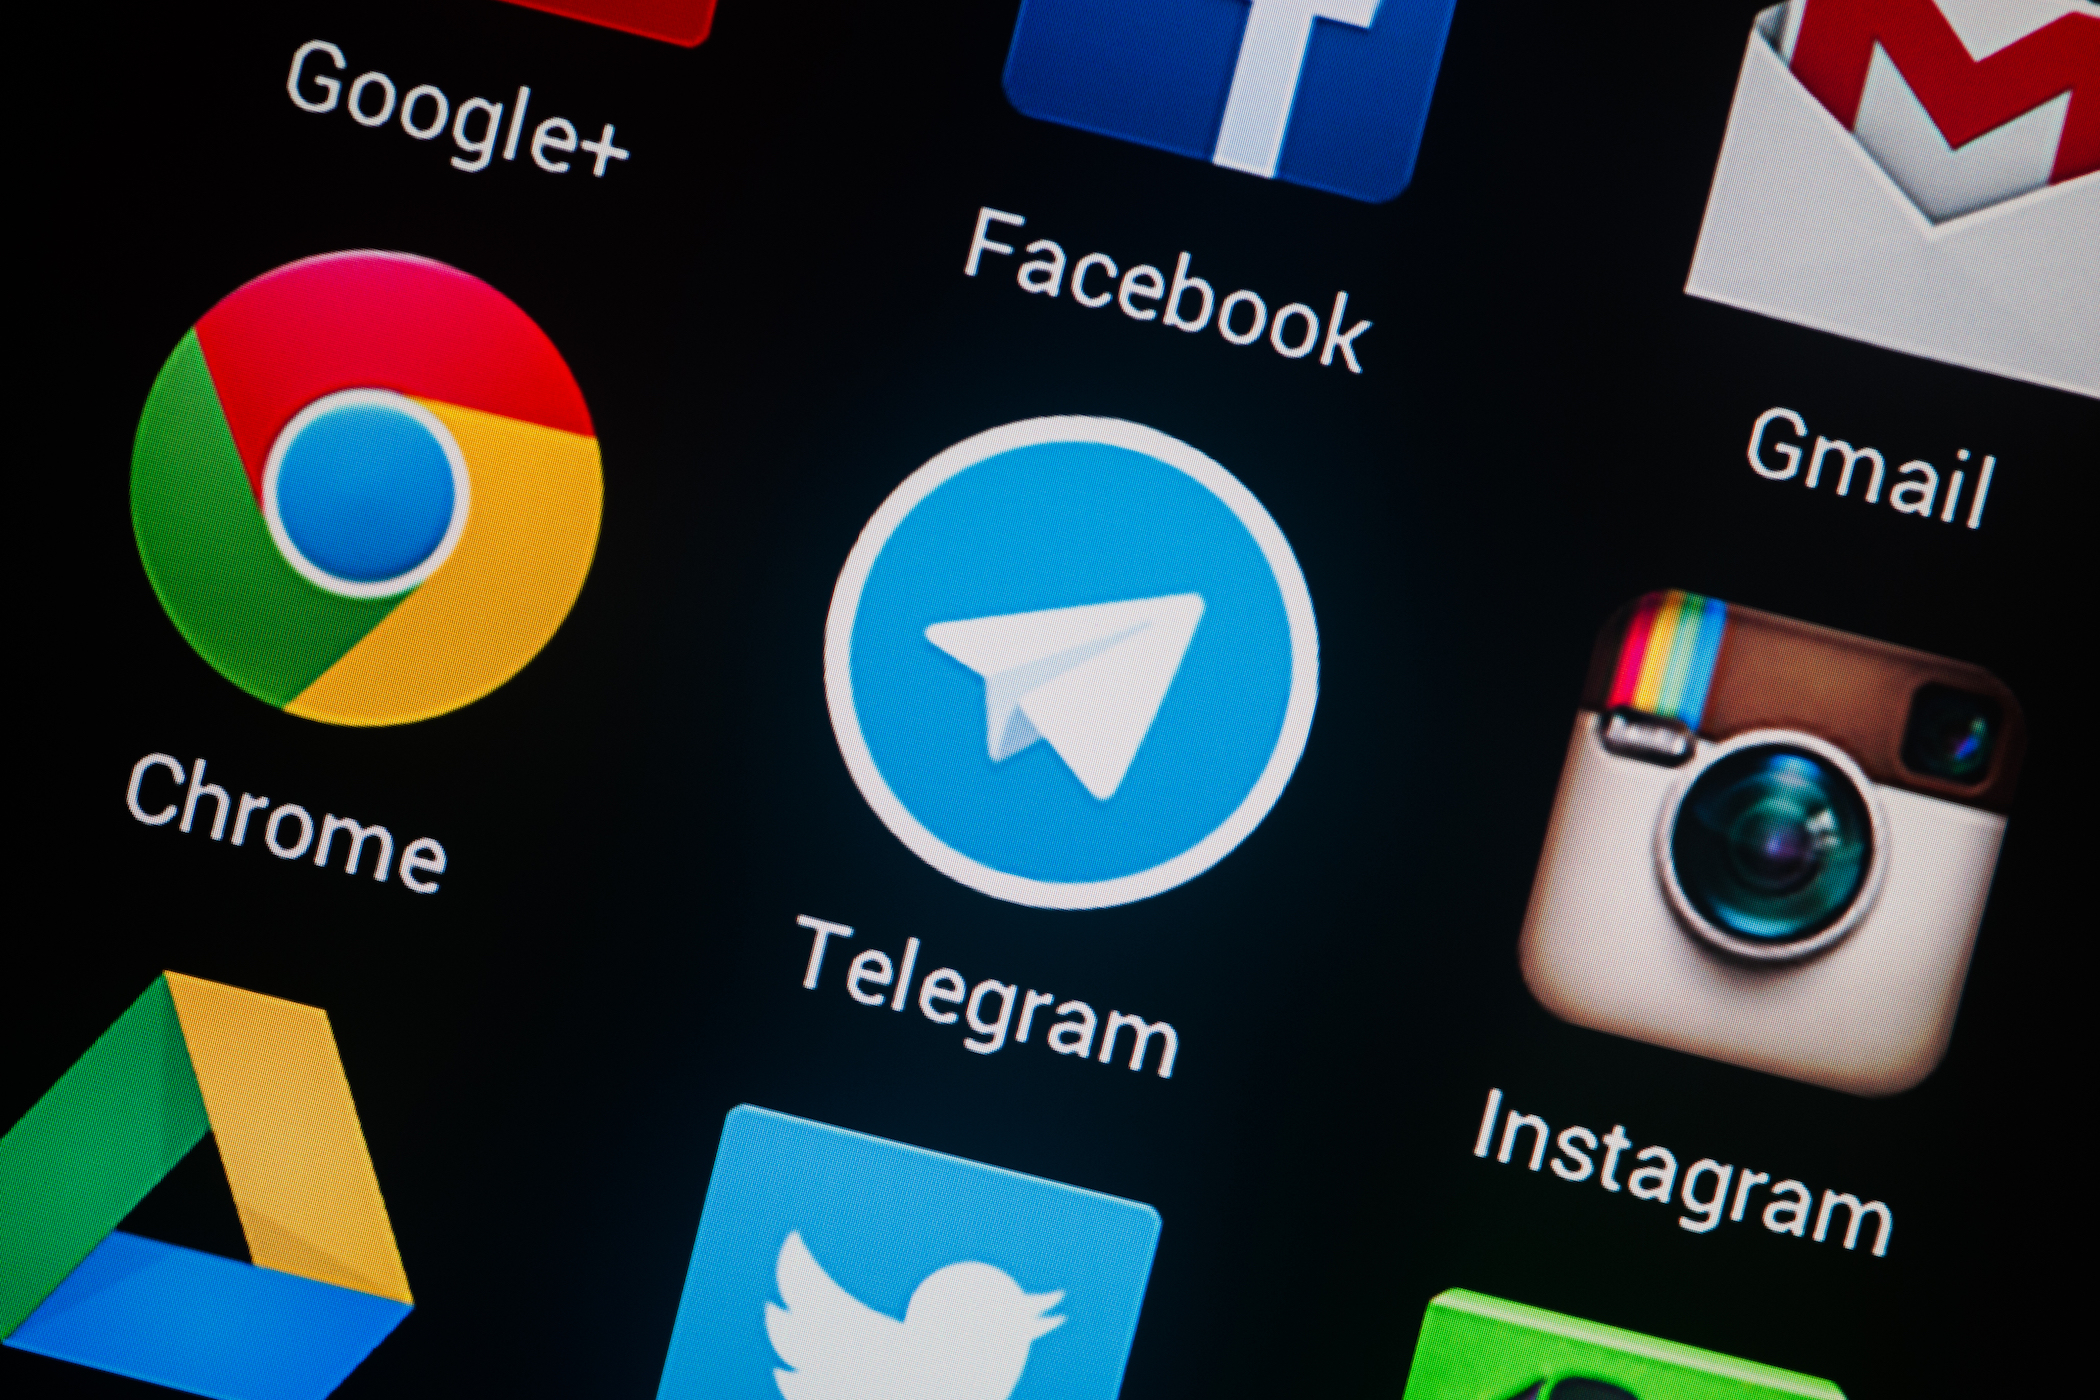 NOVOKUZNETS, RUSSIA - MARCH 13, 2014: Closeup photo of Telegram icon on mobile phone screen.; Shutterstock ID 181909403; PO: aol; Job: production; Client: drone